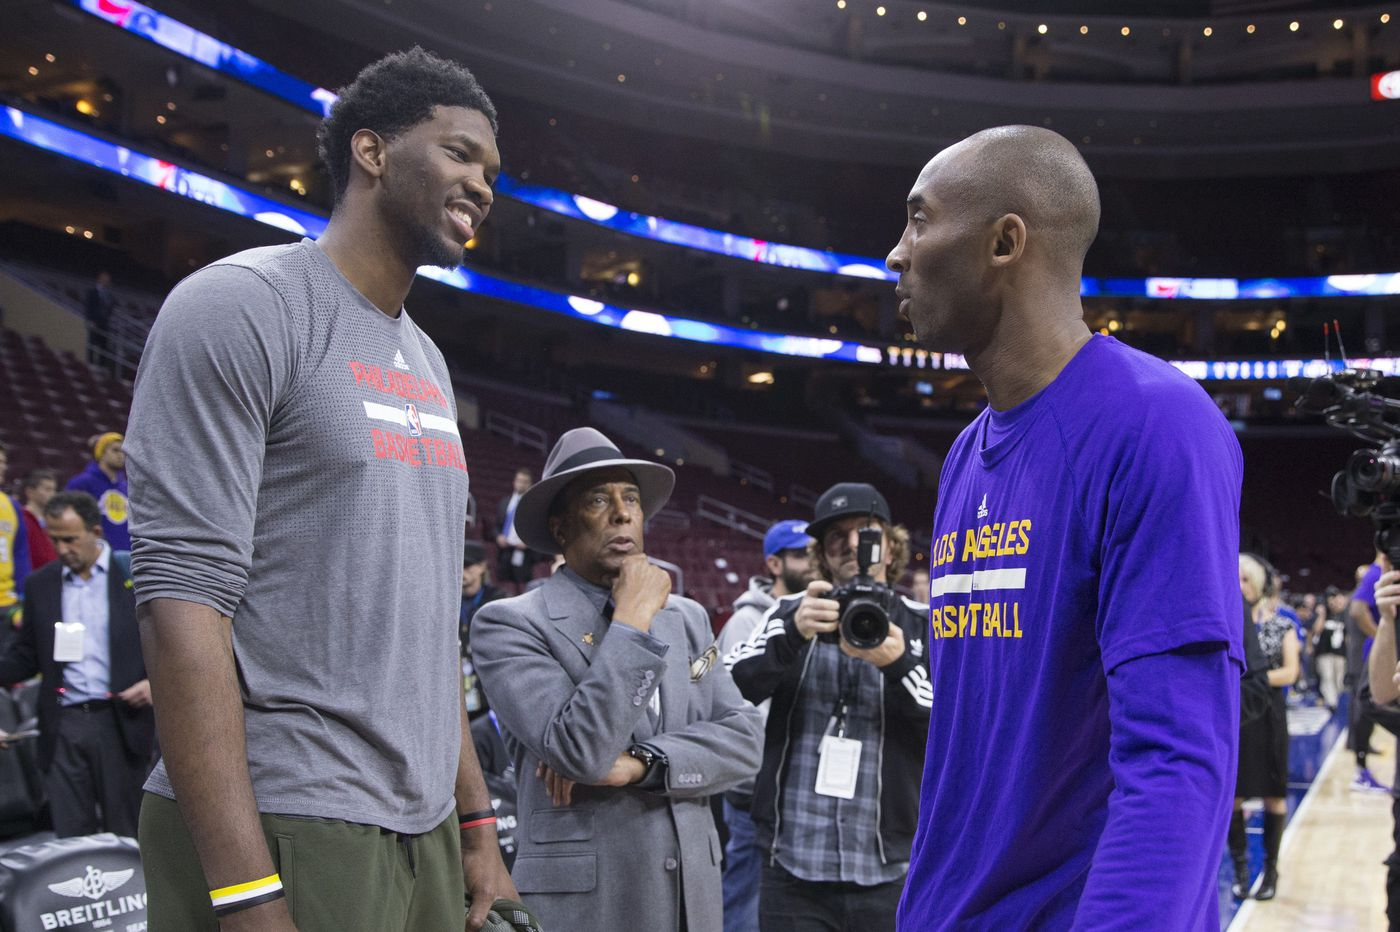 Kobe Bryant is the reason Sixers fans have a Joel Embiid to root for and cherish | Off the Dribble